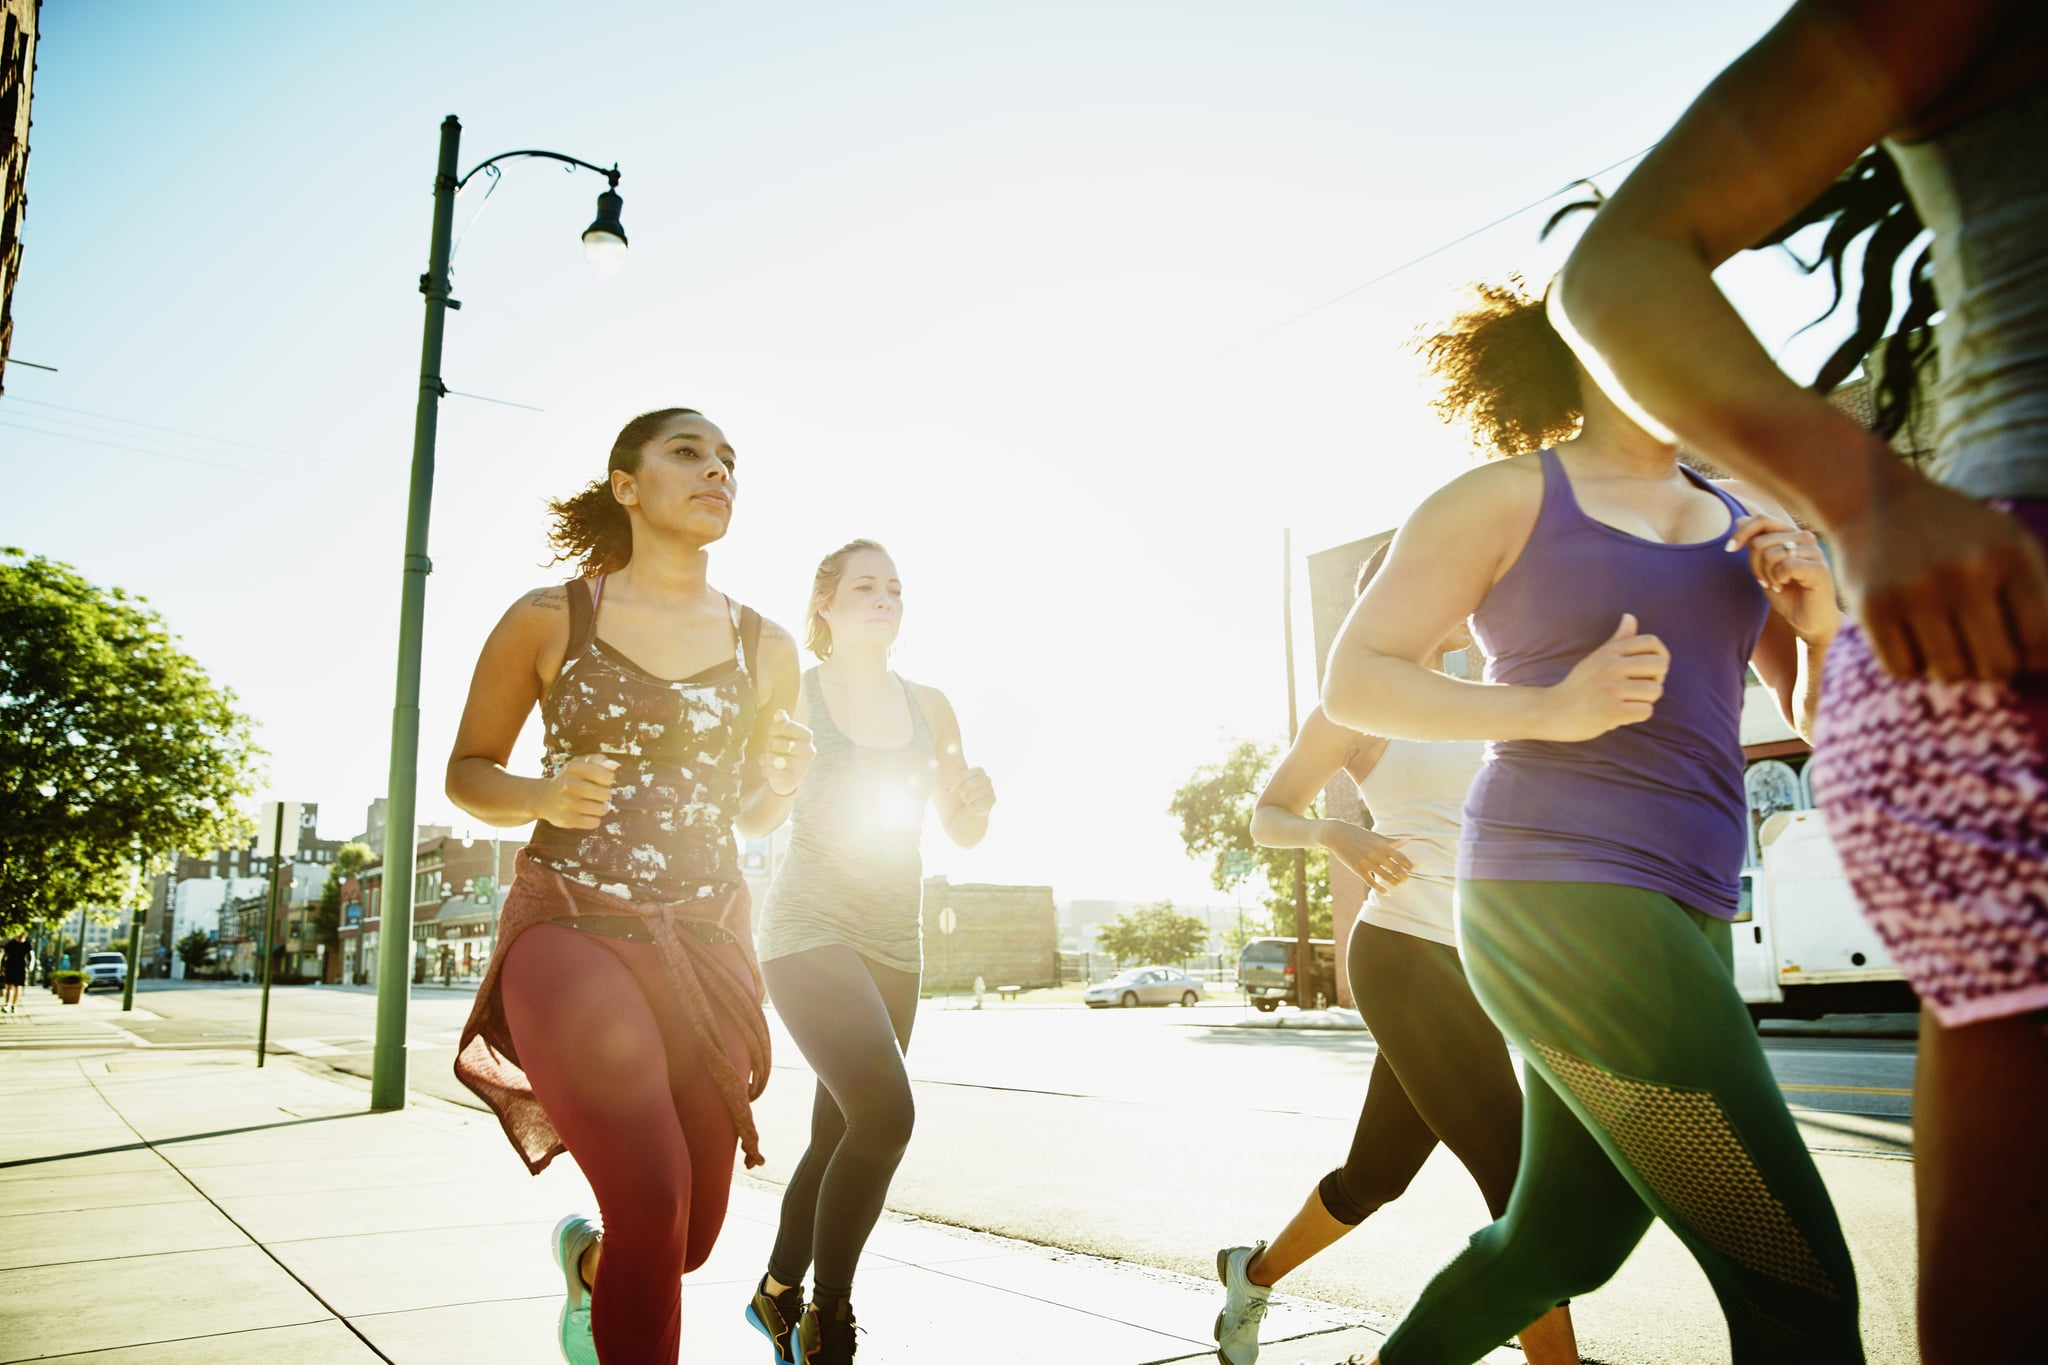 An Olympian Told Us Her No. 1 Tip For New Runners, and It's Not What You Think